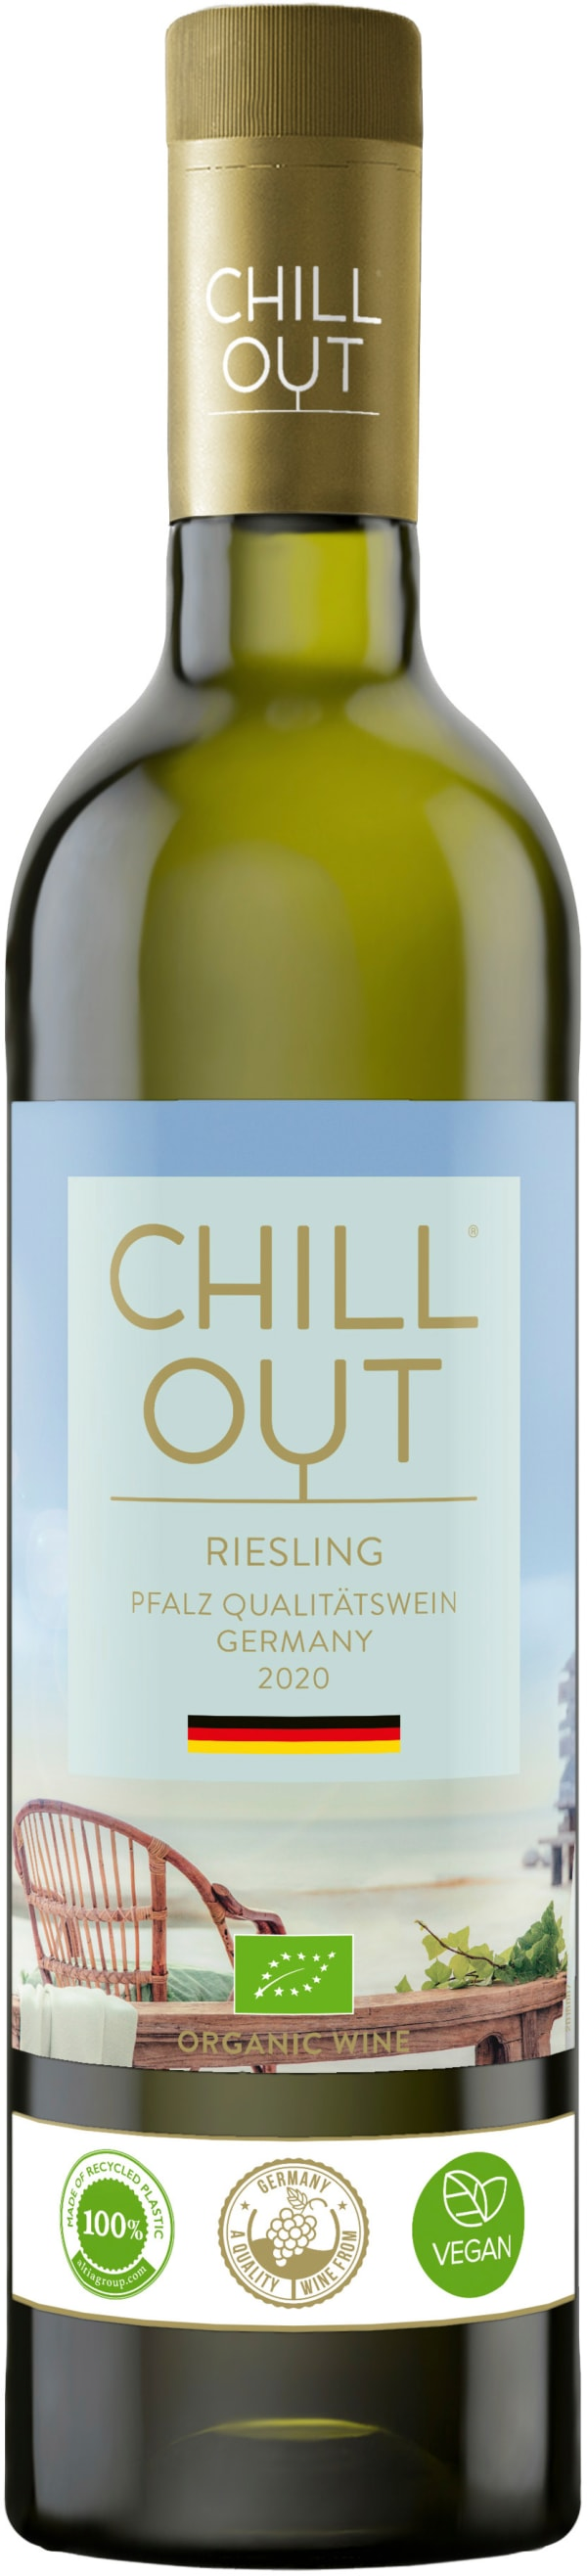 Chill Out Riesling 2017 plastic bottle